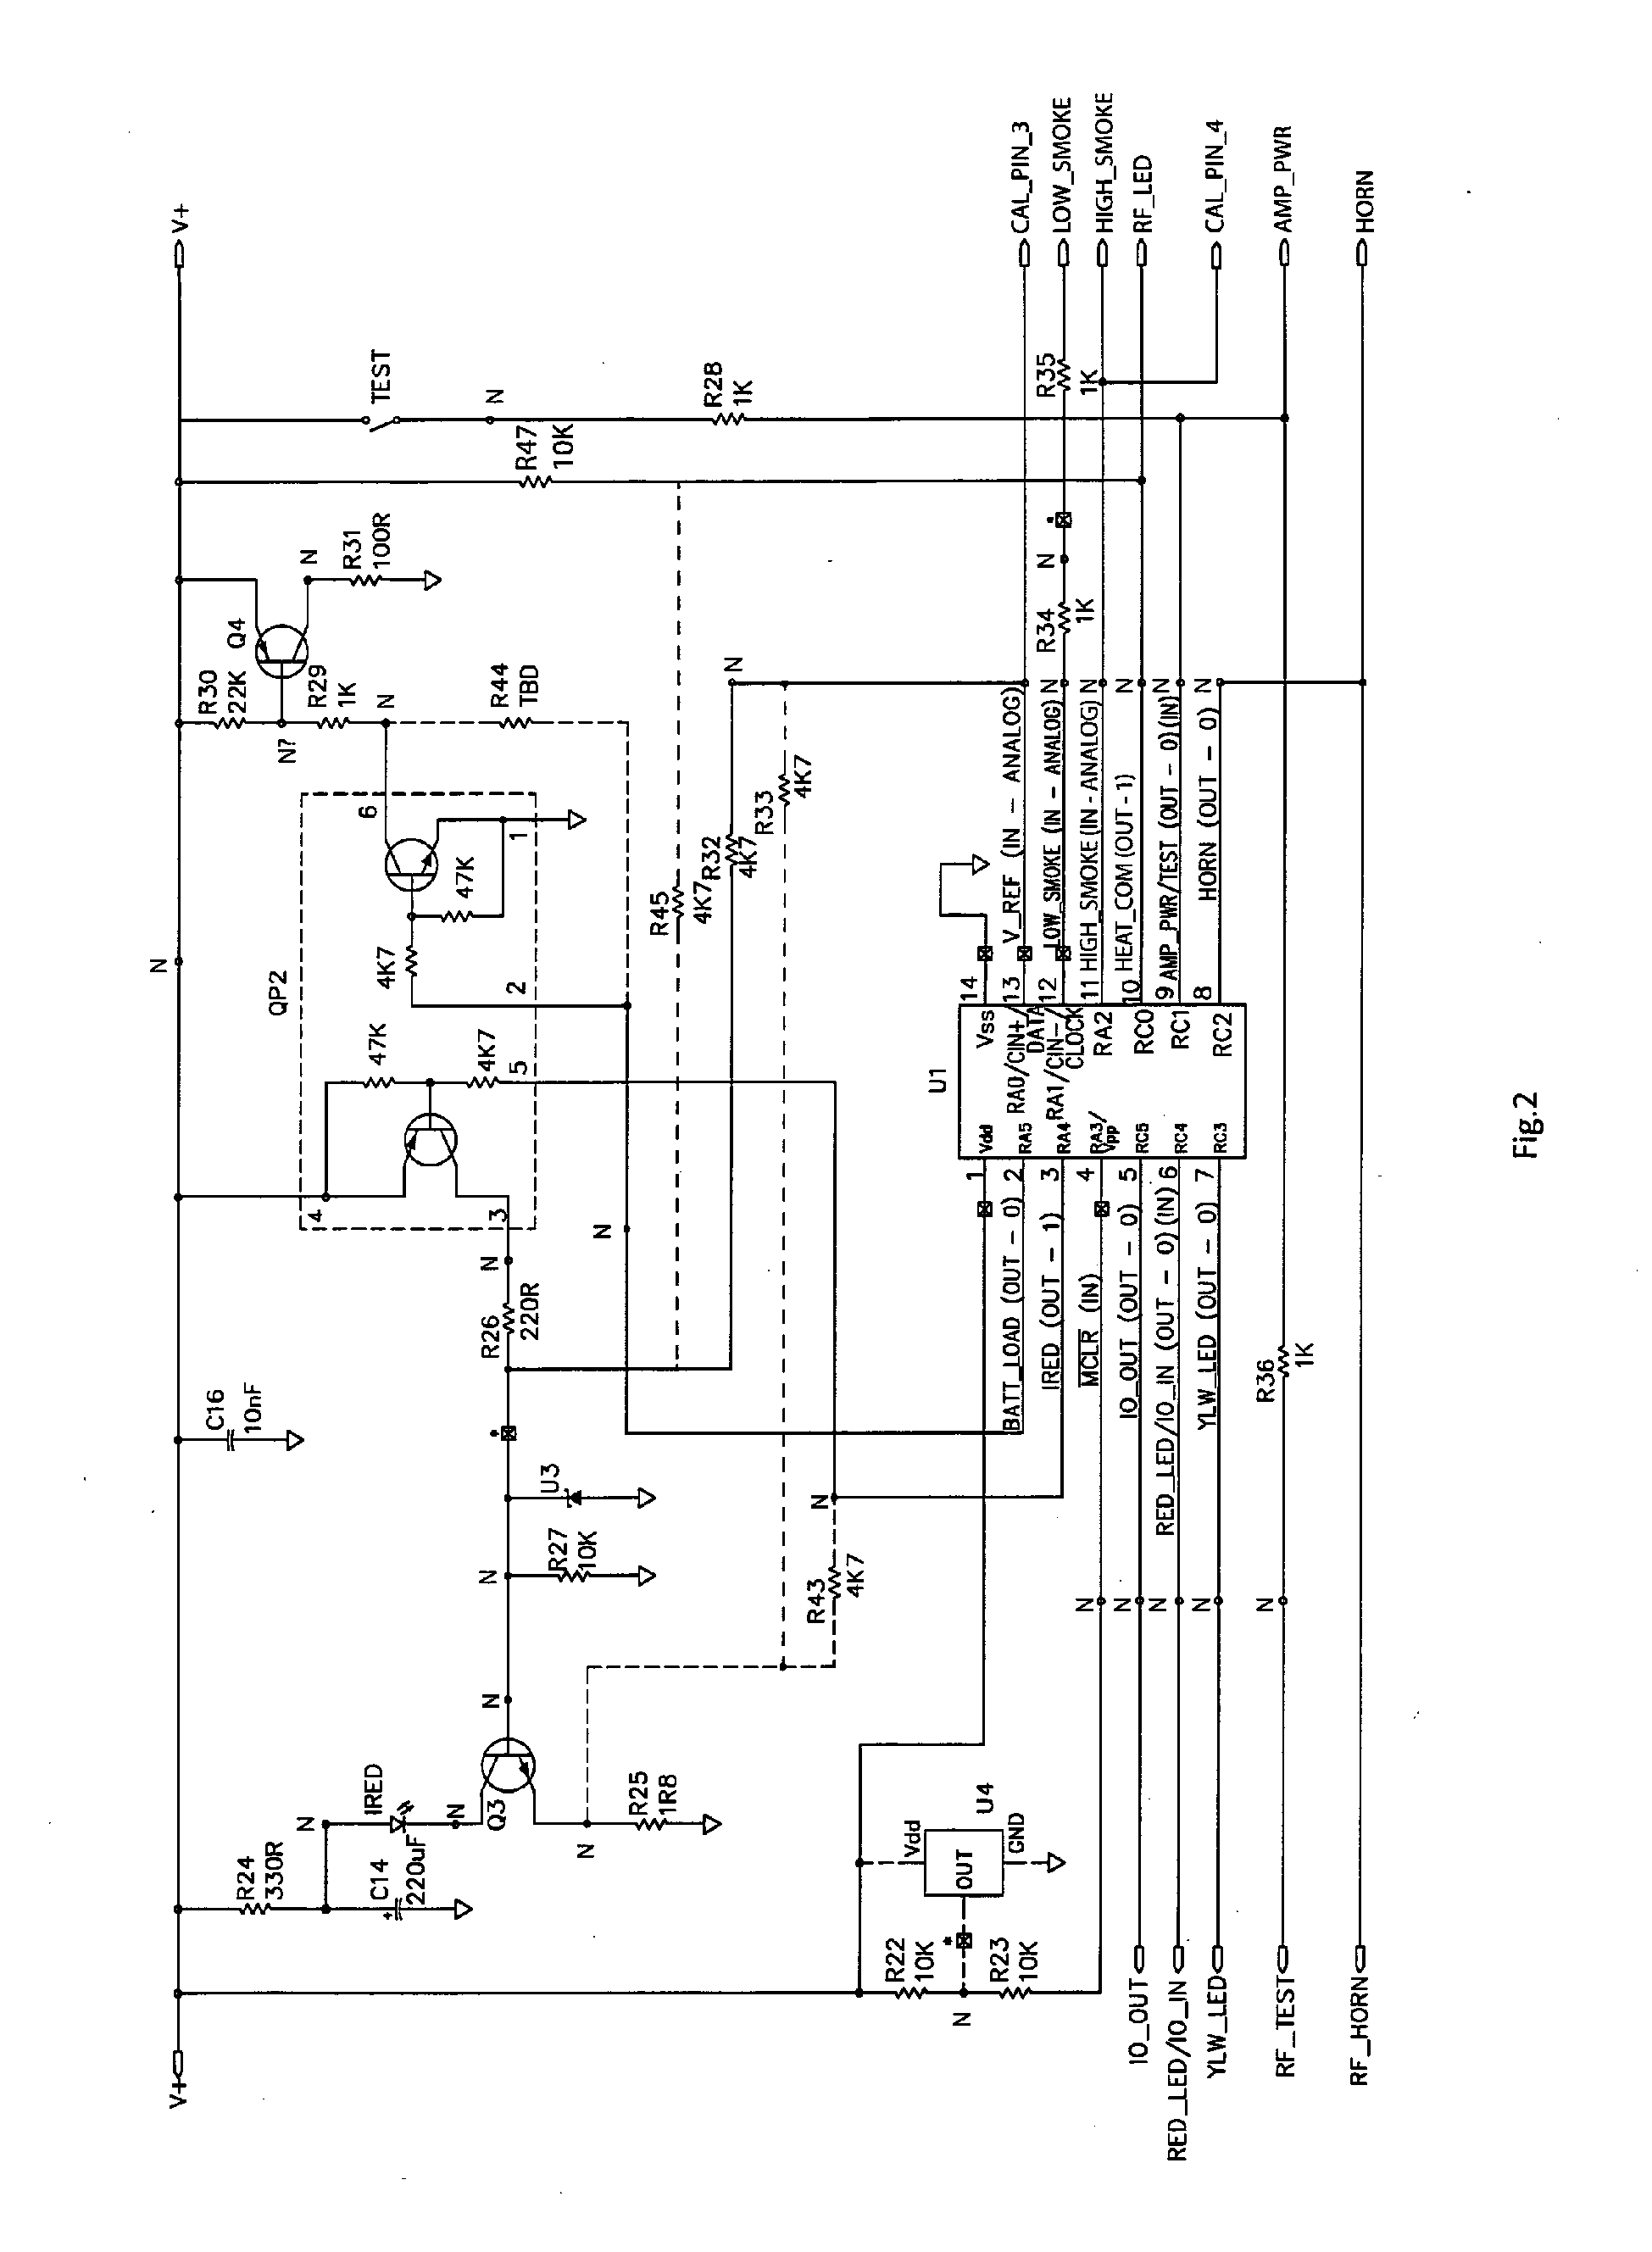 Smoke Detectors In Series Wiring Diagram Schematics Diagrams 4 Wire Detector Interconnected Alarms Fire Alarm Circuit